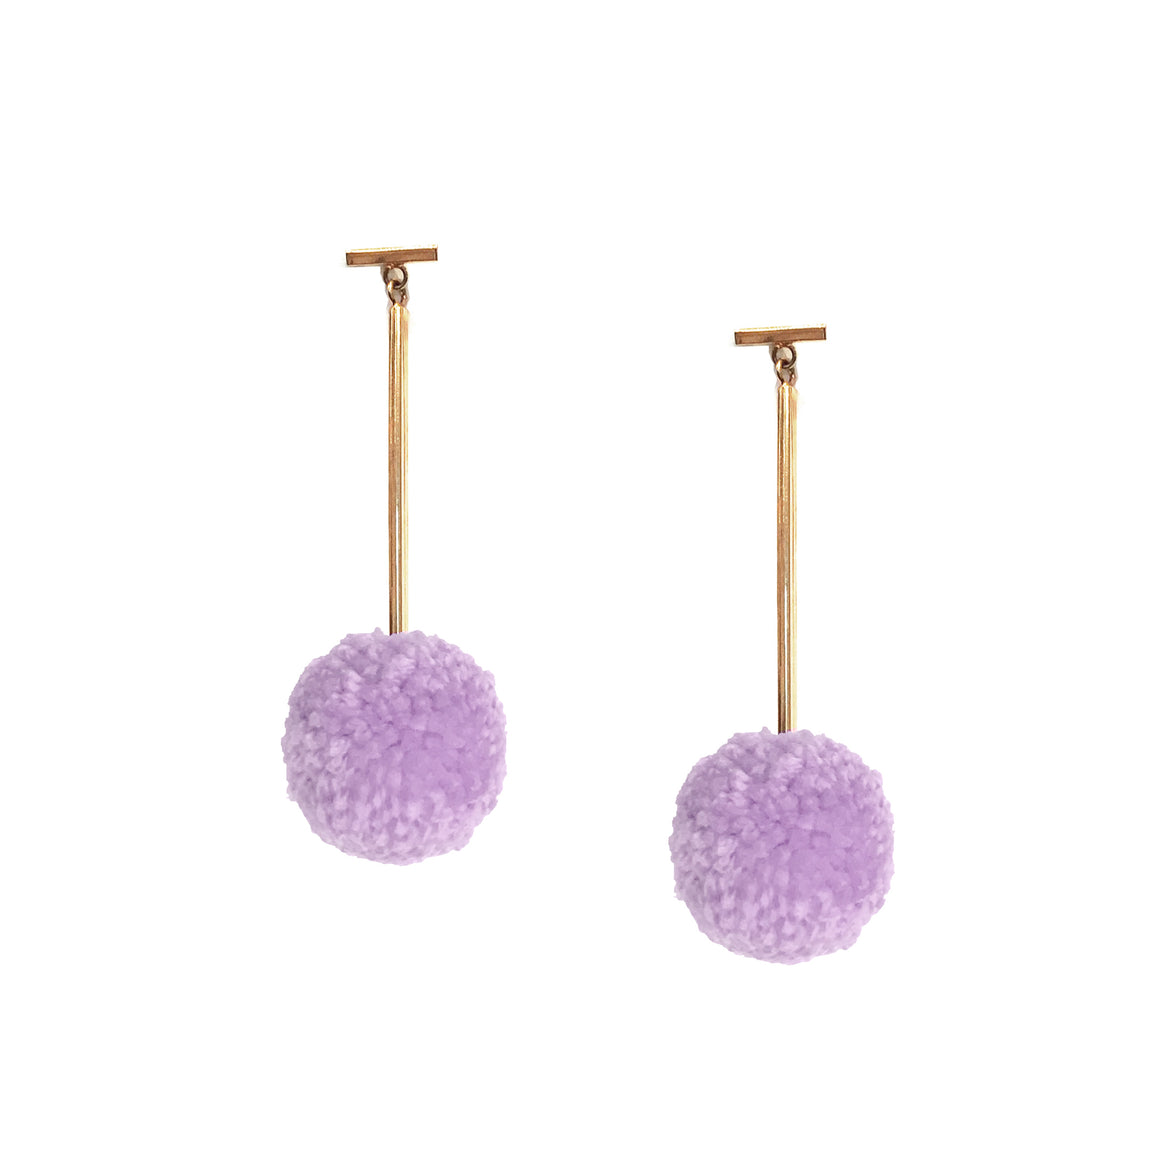 "Lavender 1"" Yarn Pom Pom T Bar Earrings, Earrings, Tuleste, Tuleste"